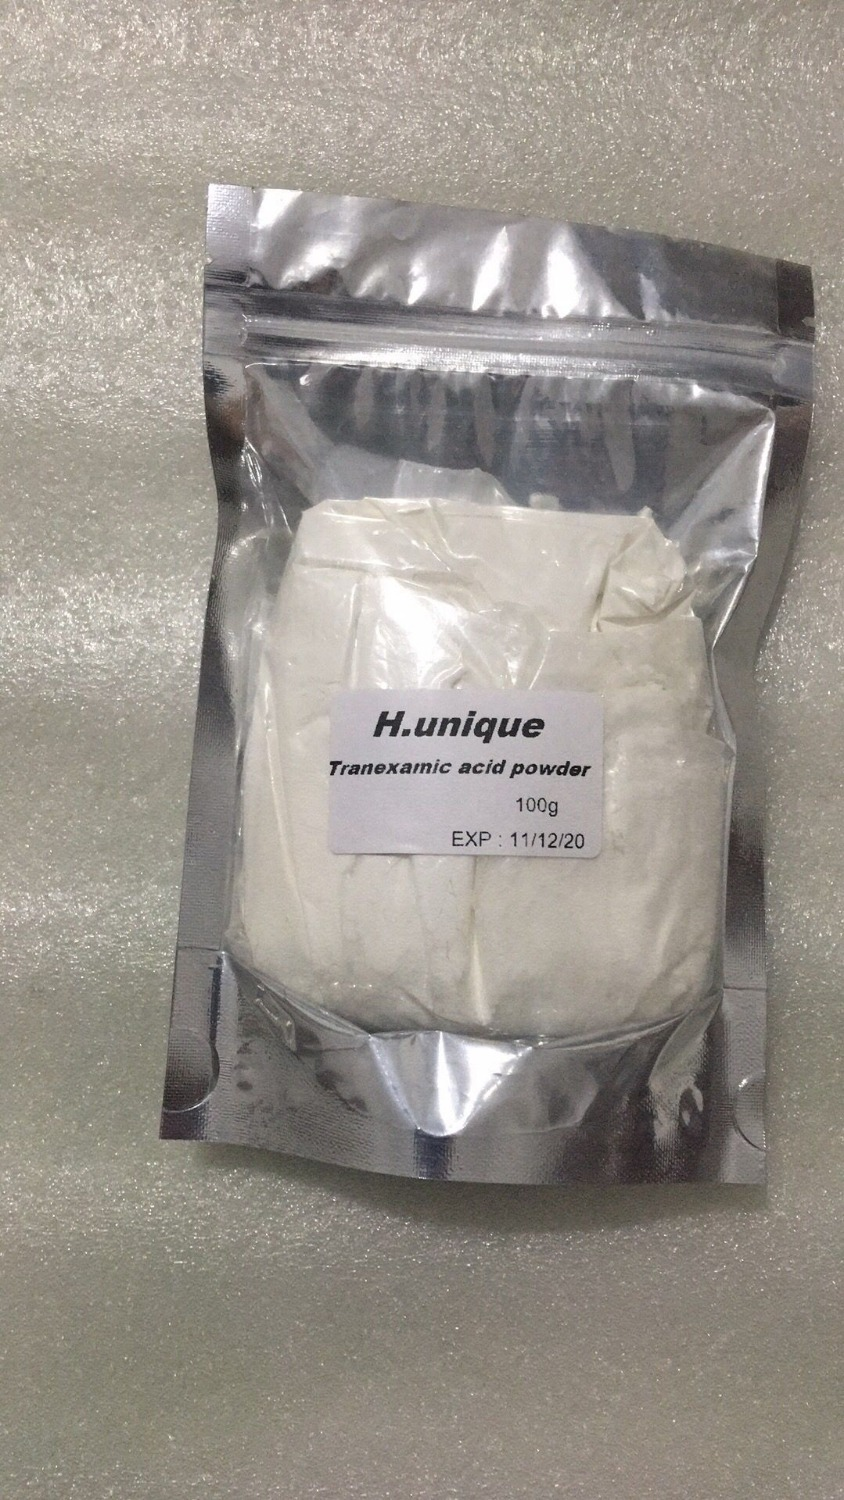 100g/500g Tranexamic Acid powder Skin care Tranexamic acid whitening and brightening100g/500g Tranexamic Acid powder Skin care Tranexamic acid whitening and brightening